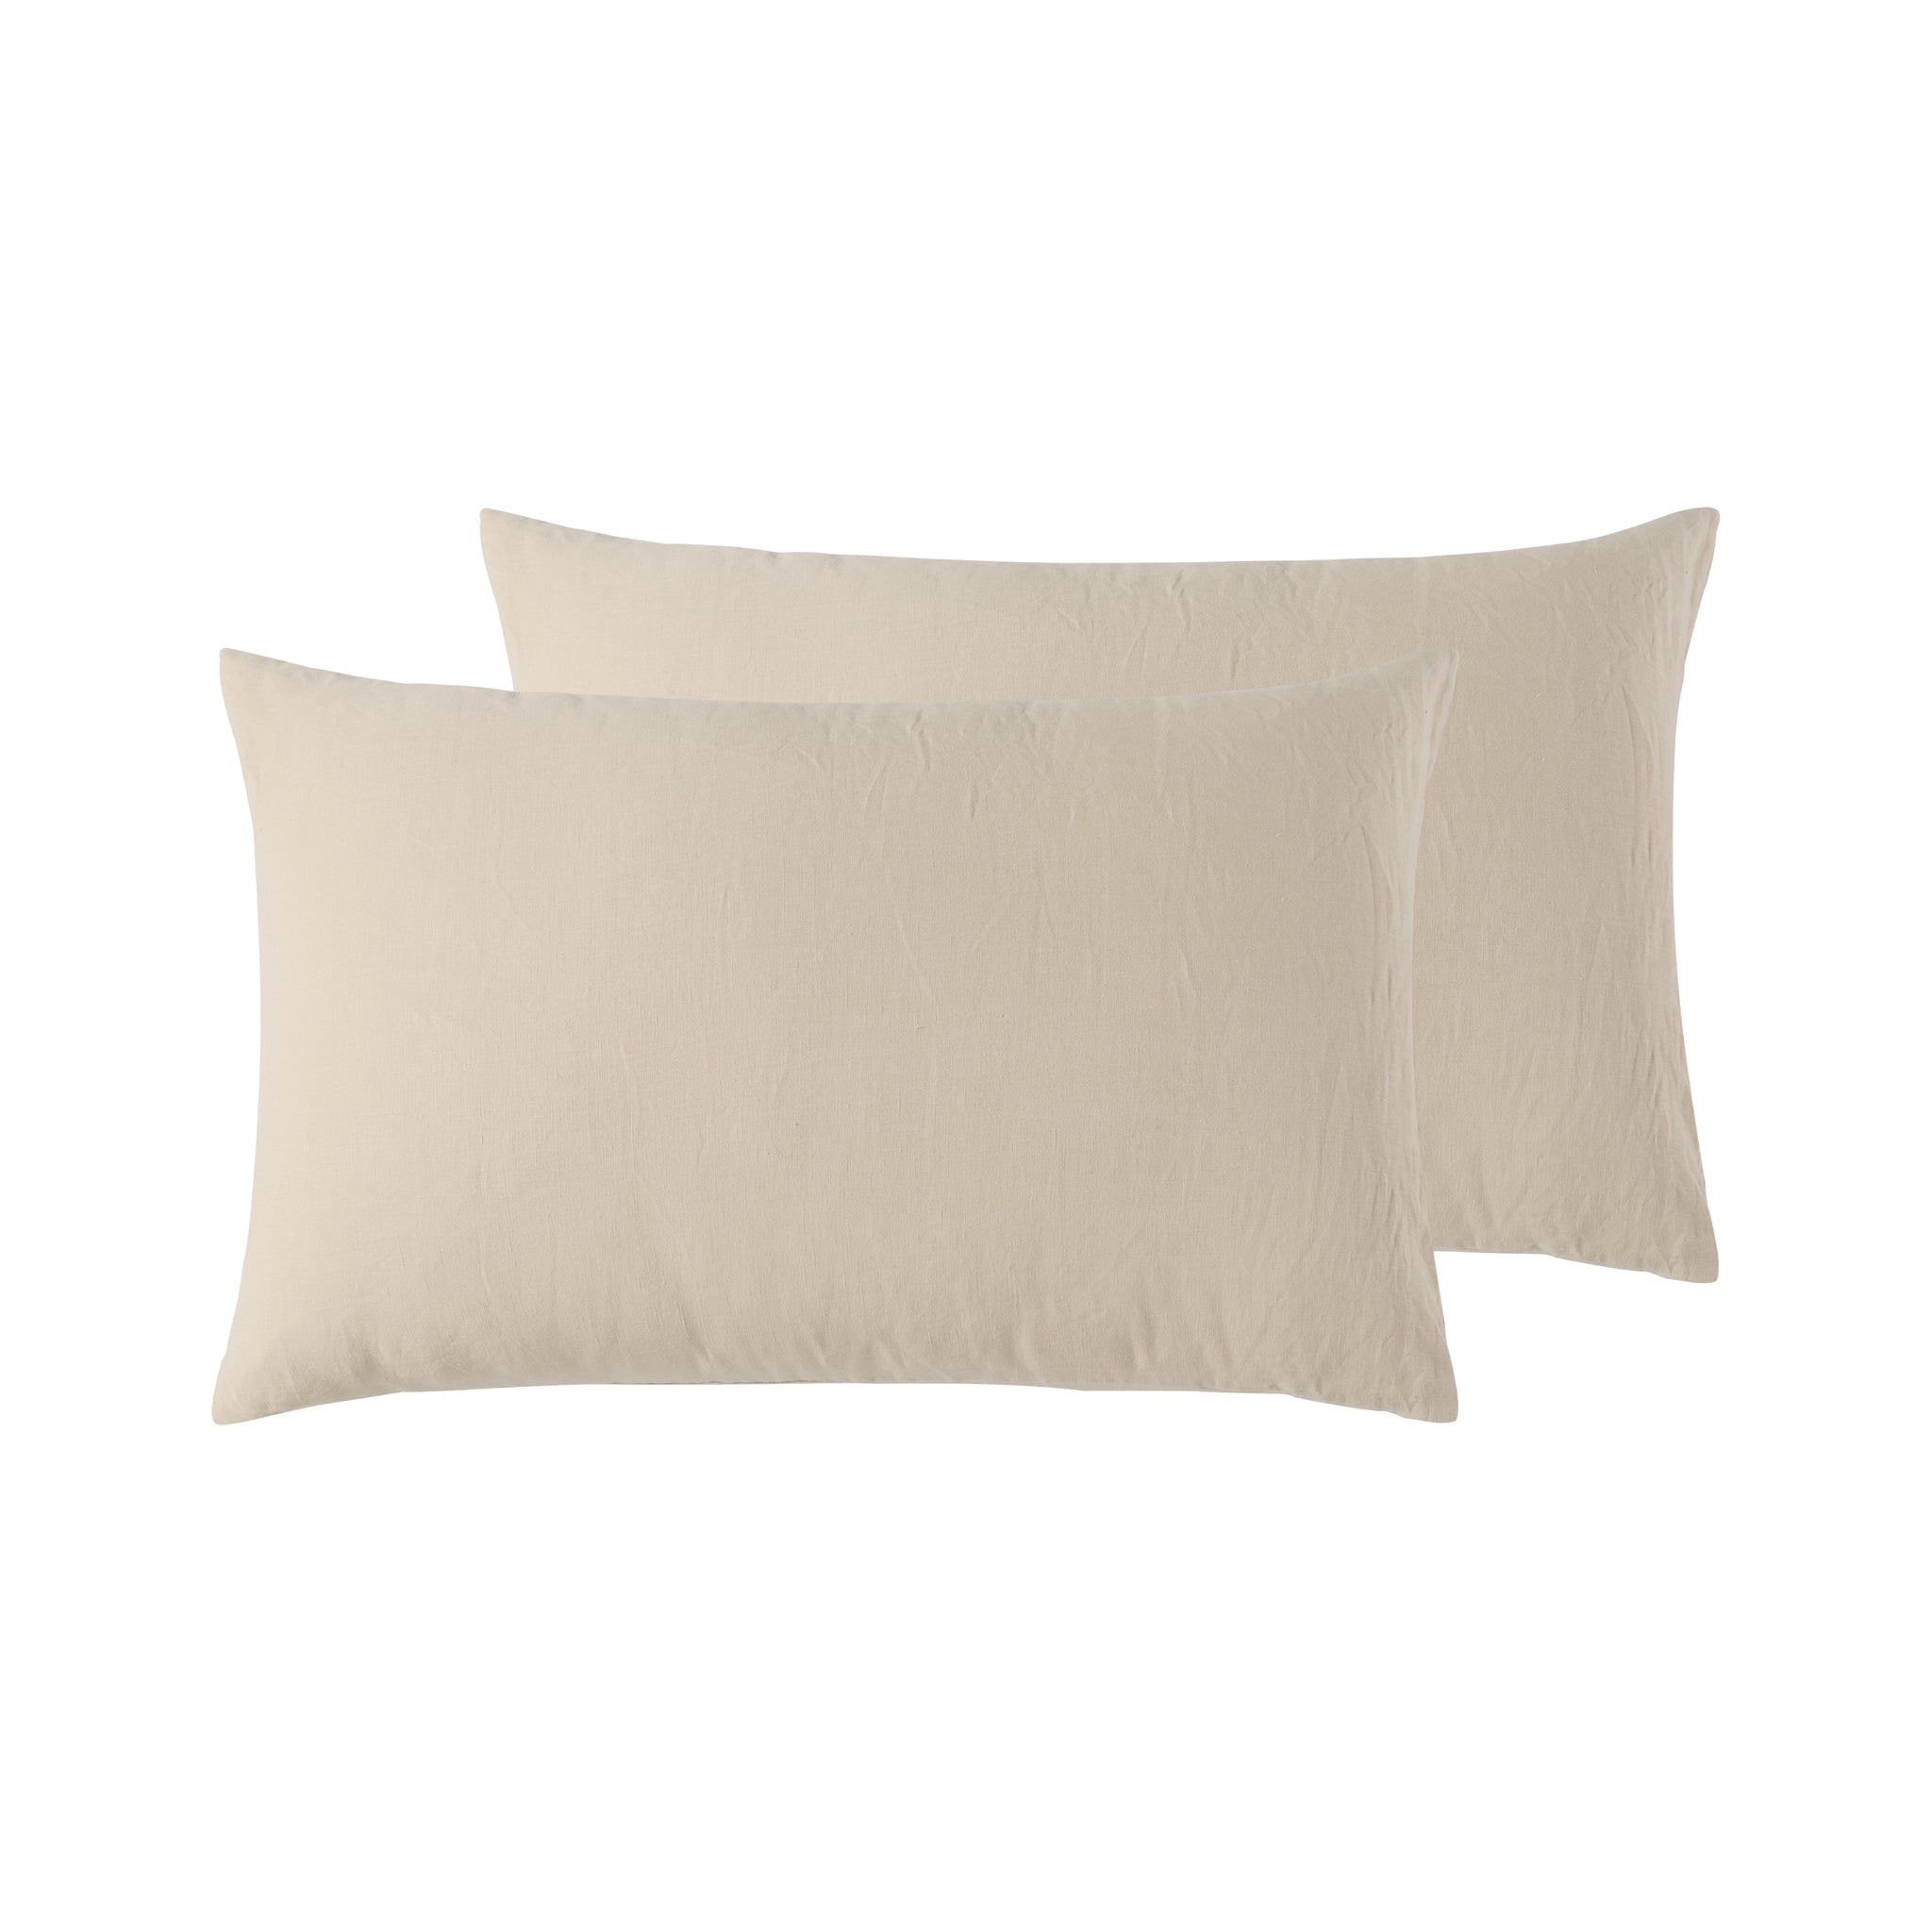 Birch / Beige - Pure Linen - Standard Pillowcase Pair